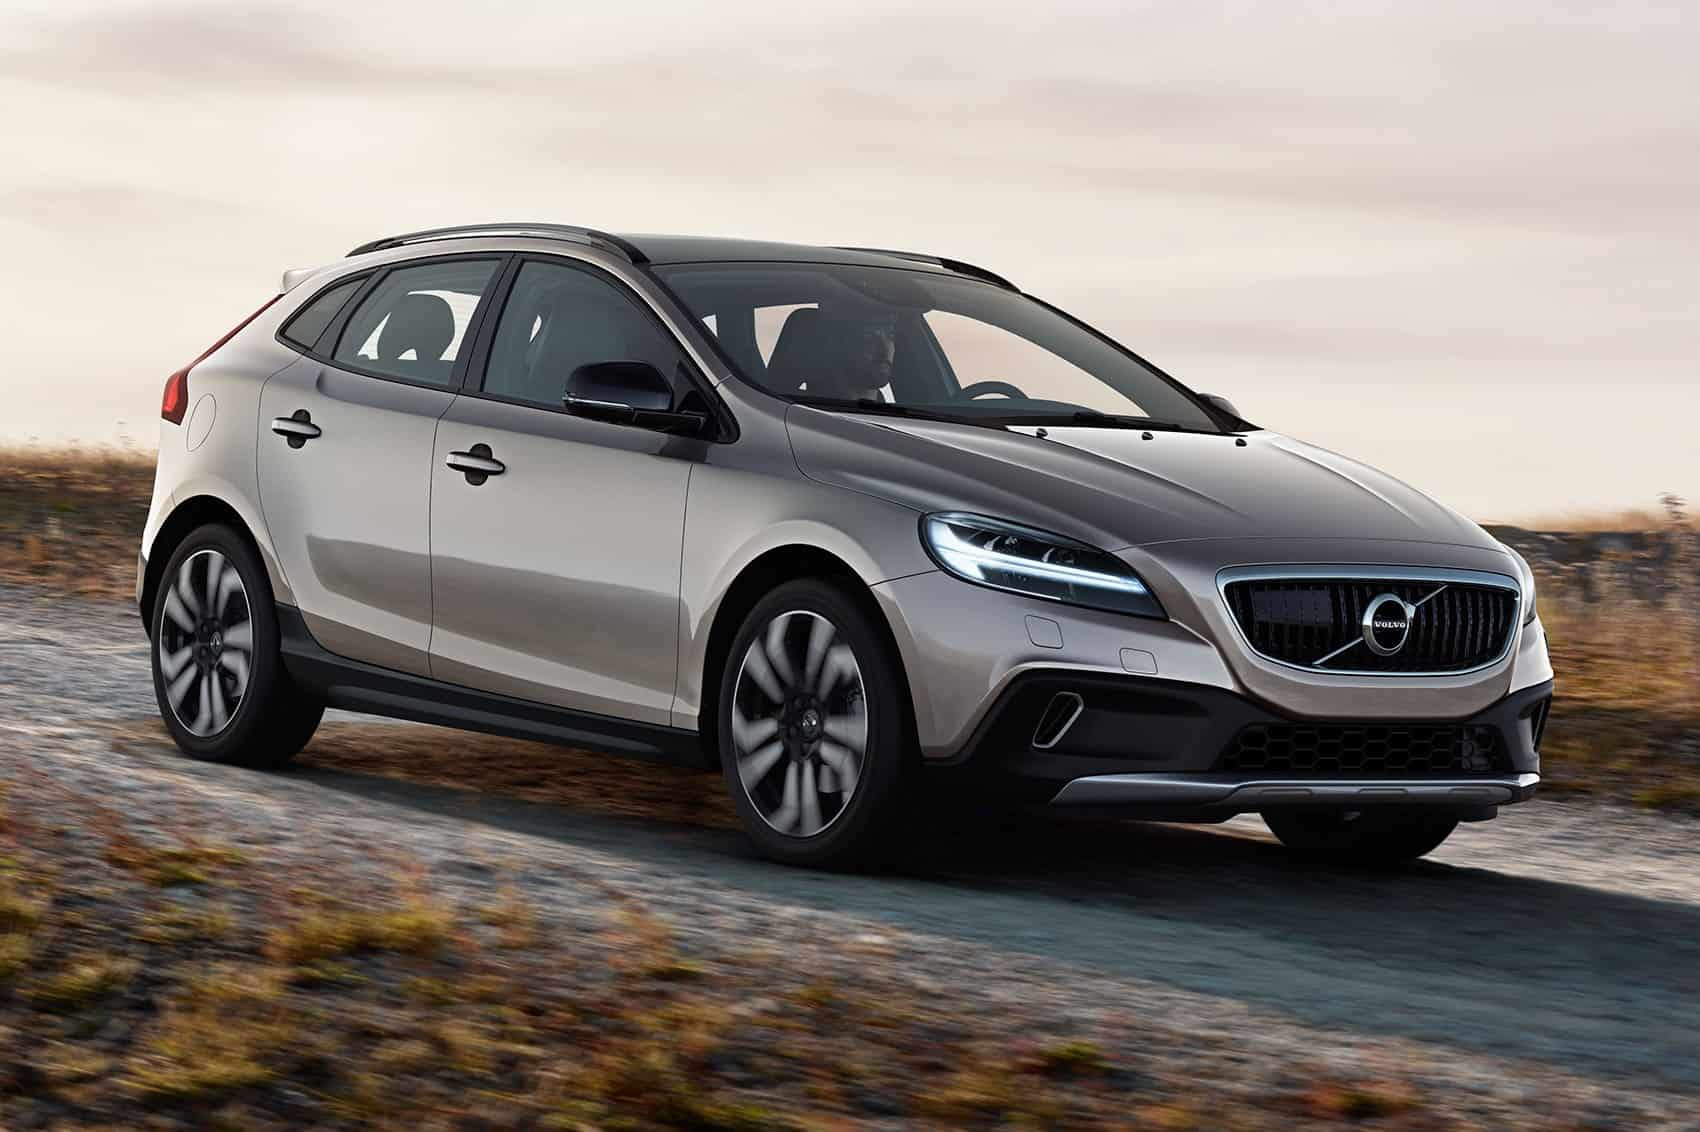 Launched 2017 Volvo V40 V40 Cross Country Price Inside